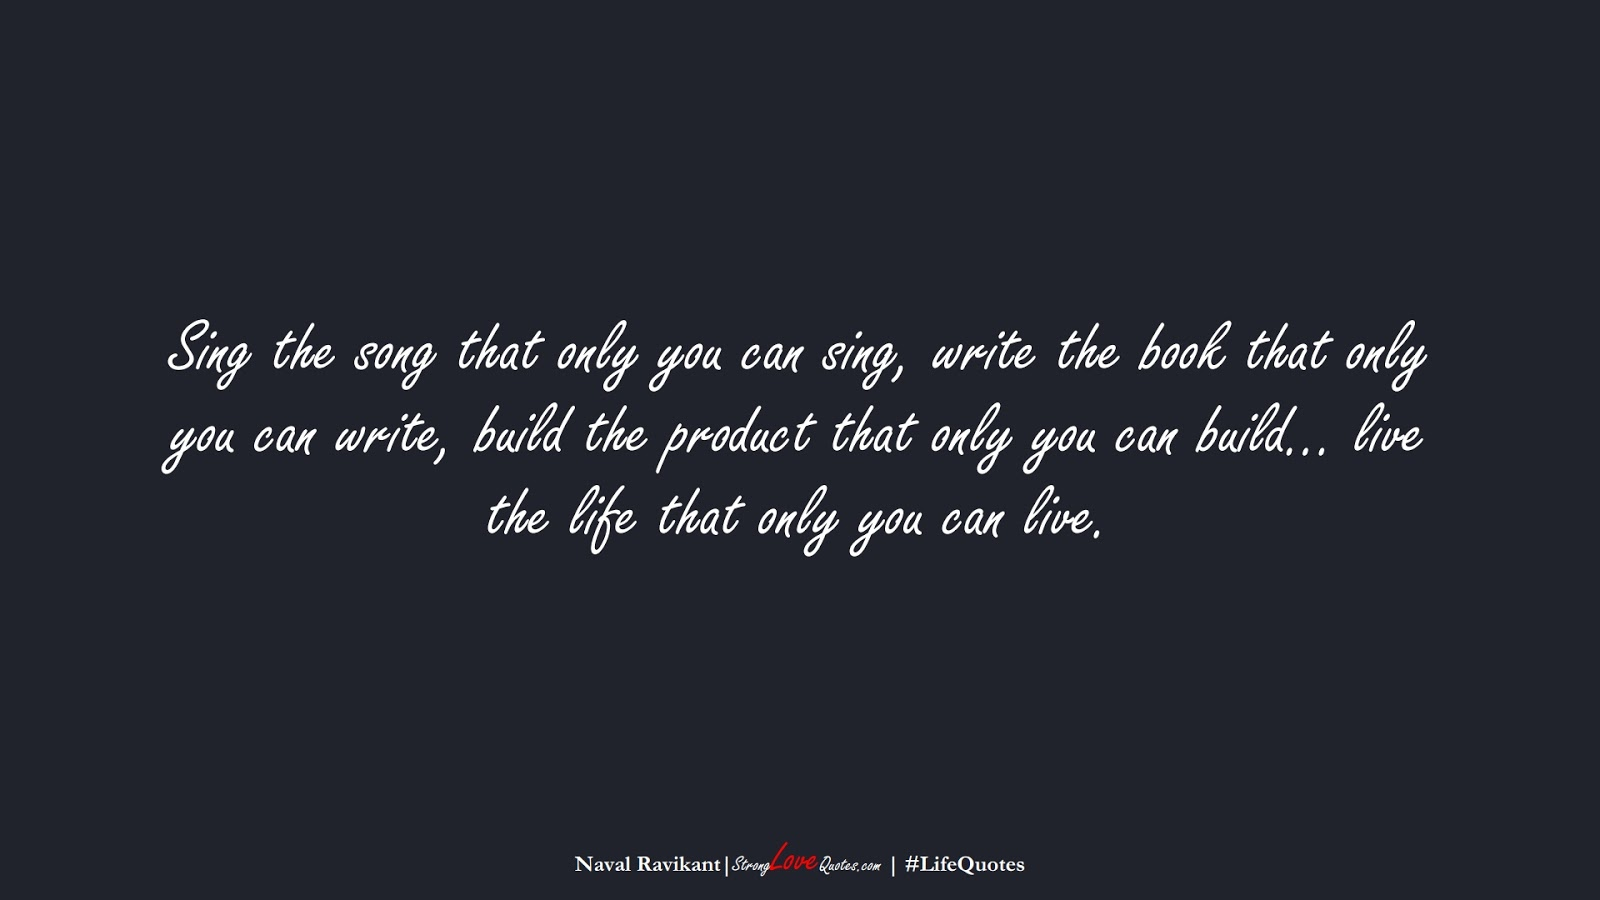 Sing the song that only you can sing, write the book that only you can write, build the product that only you can build… live the life that only you can live. (Naval Ravikant);  #LifeQuotes